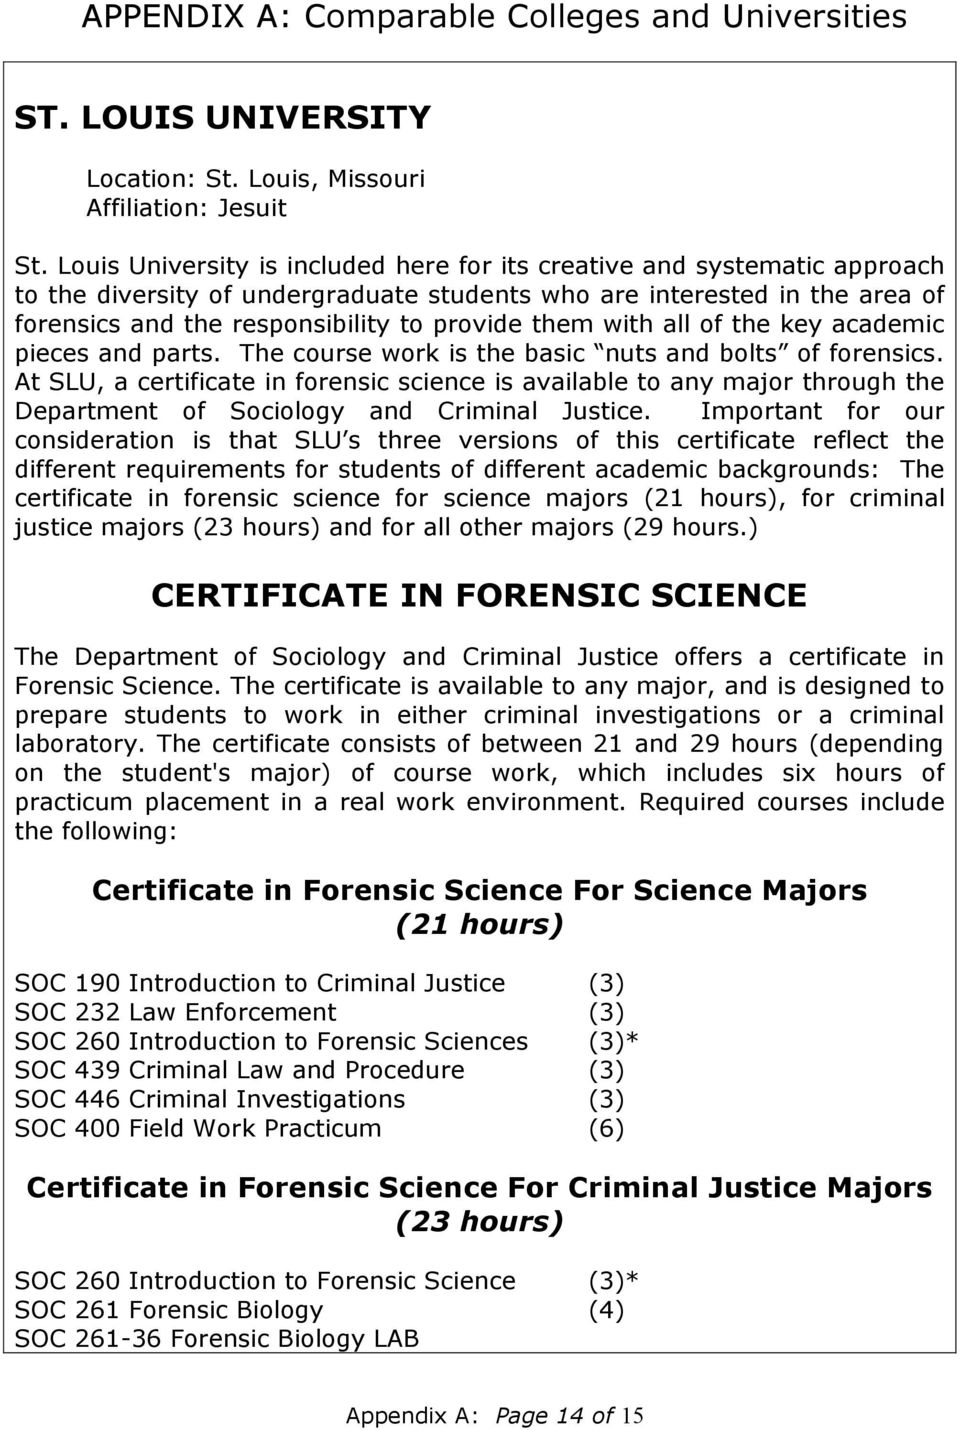 them with all of the key academic pieces and parts. The course work is the basic nuts and bolts of forensics.